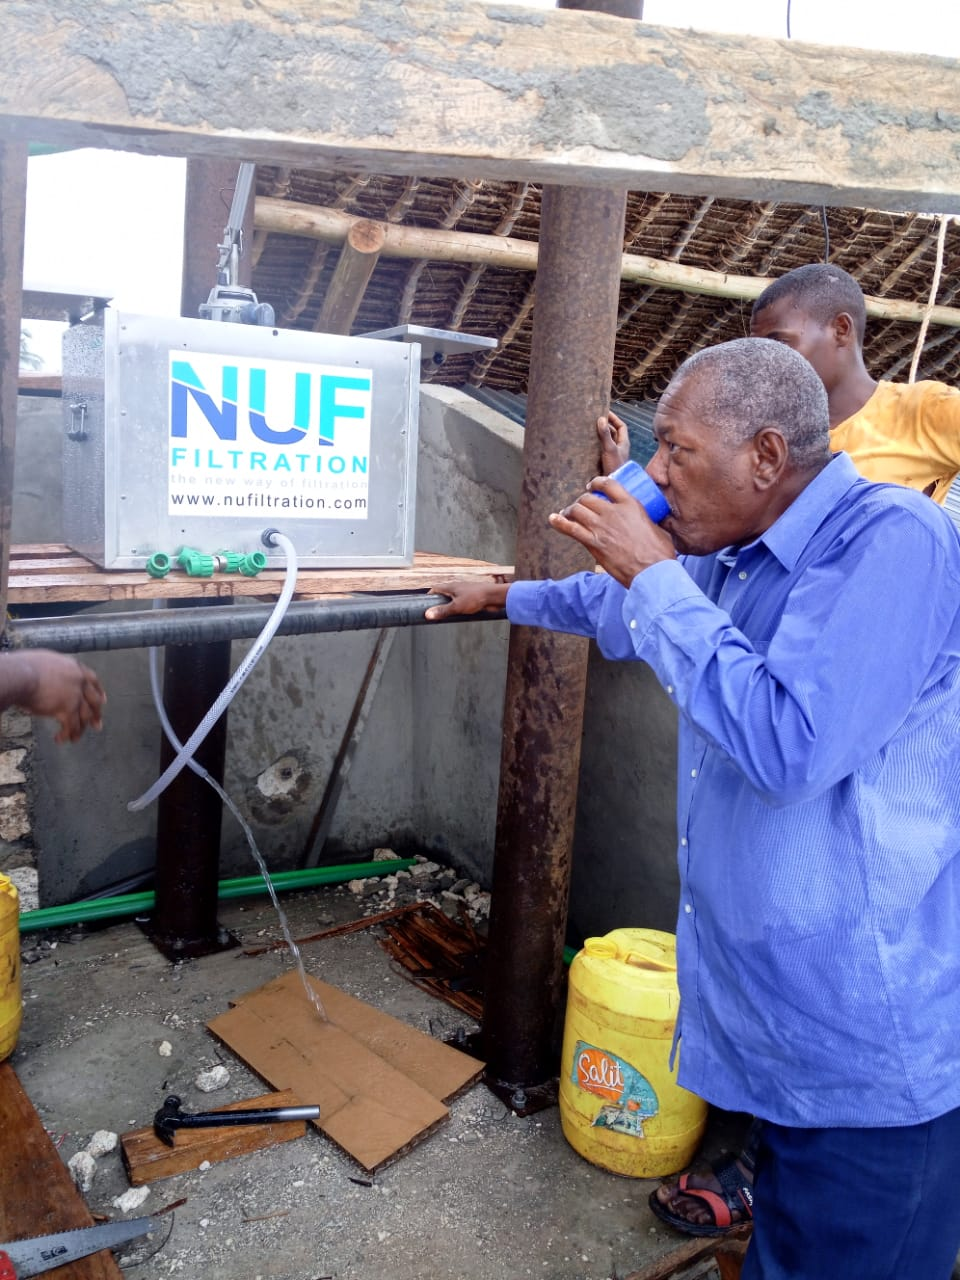 Man drinking clean water from Nufiltration